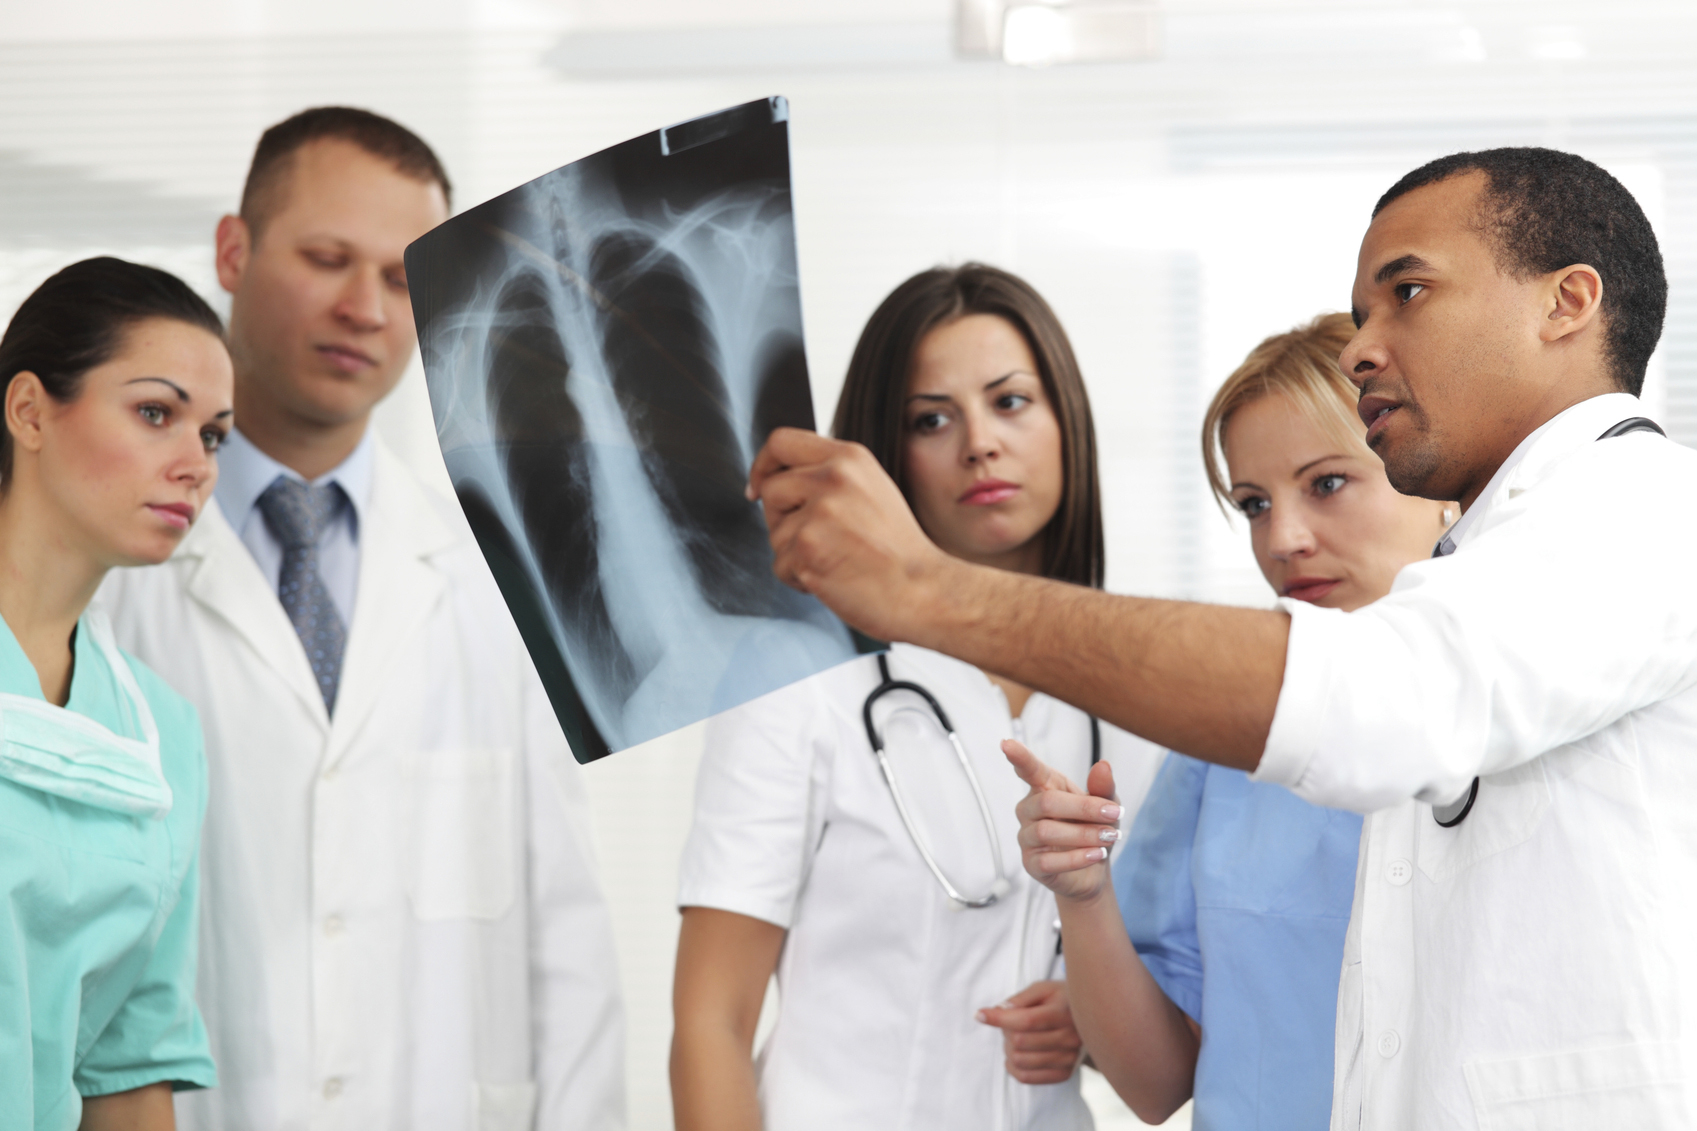 Doctors and nurses looking at patients x-ray.